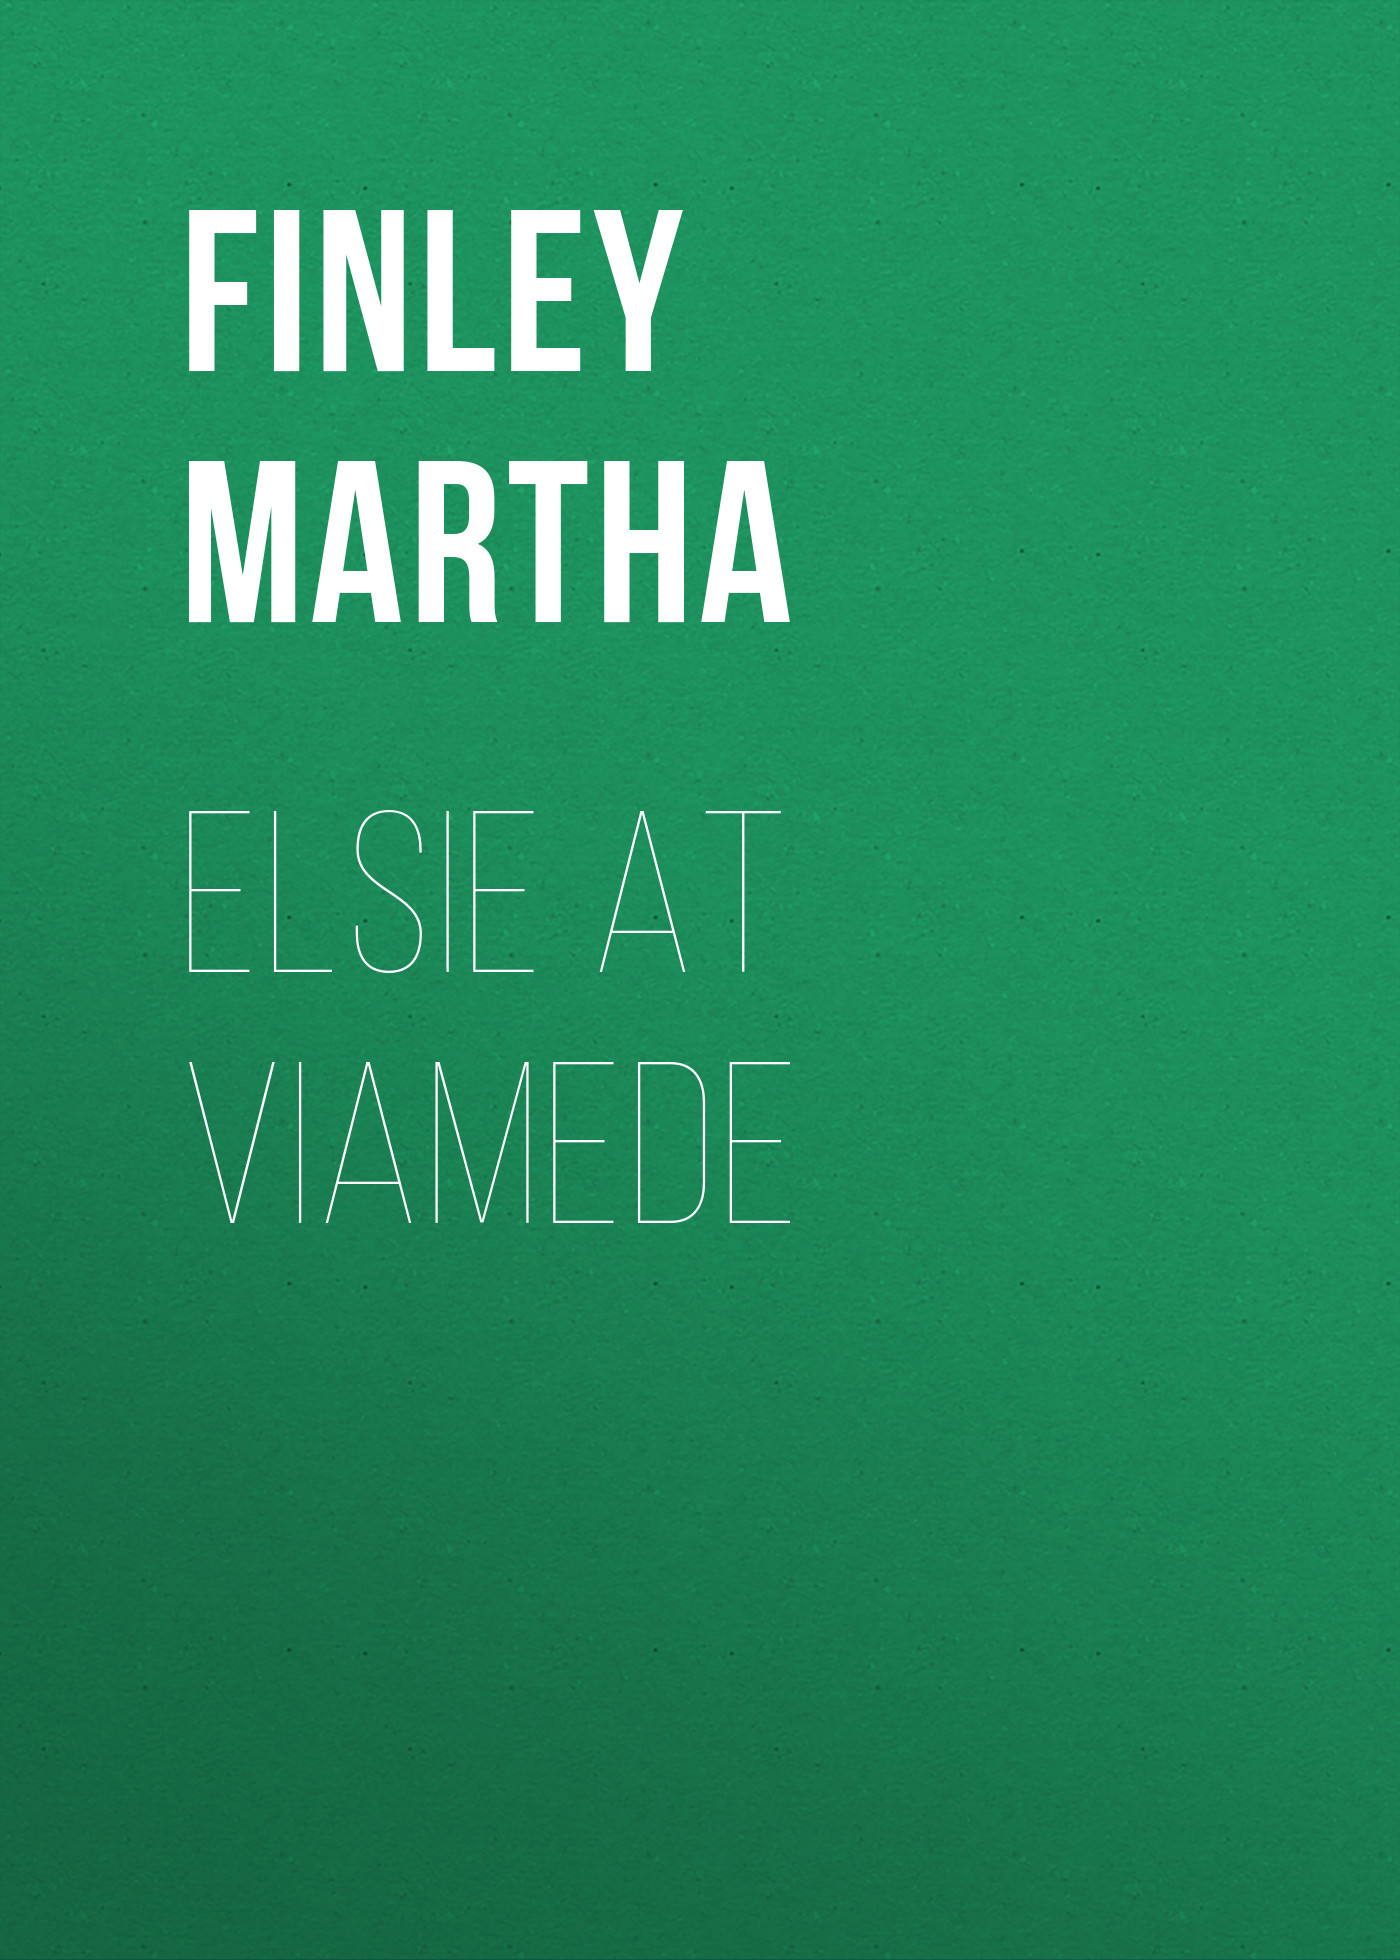 лучшая цена Finley Martha Elsie at Viamede